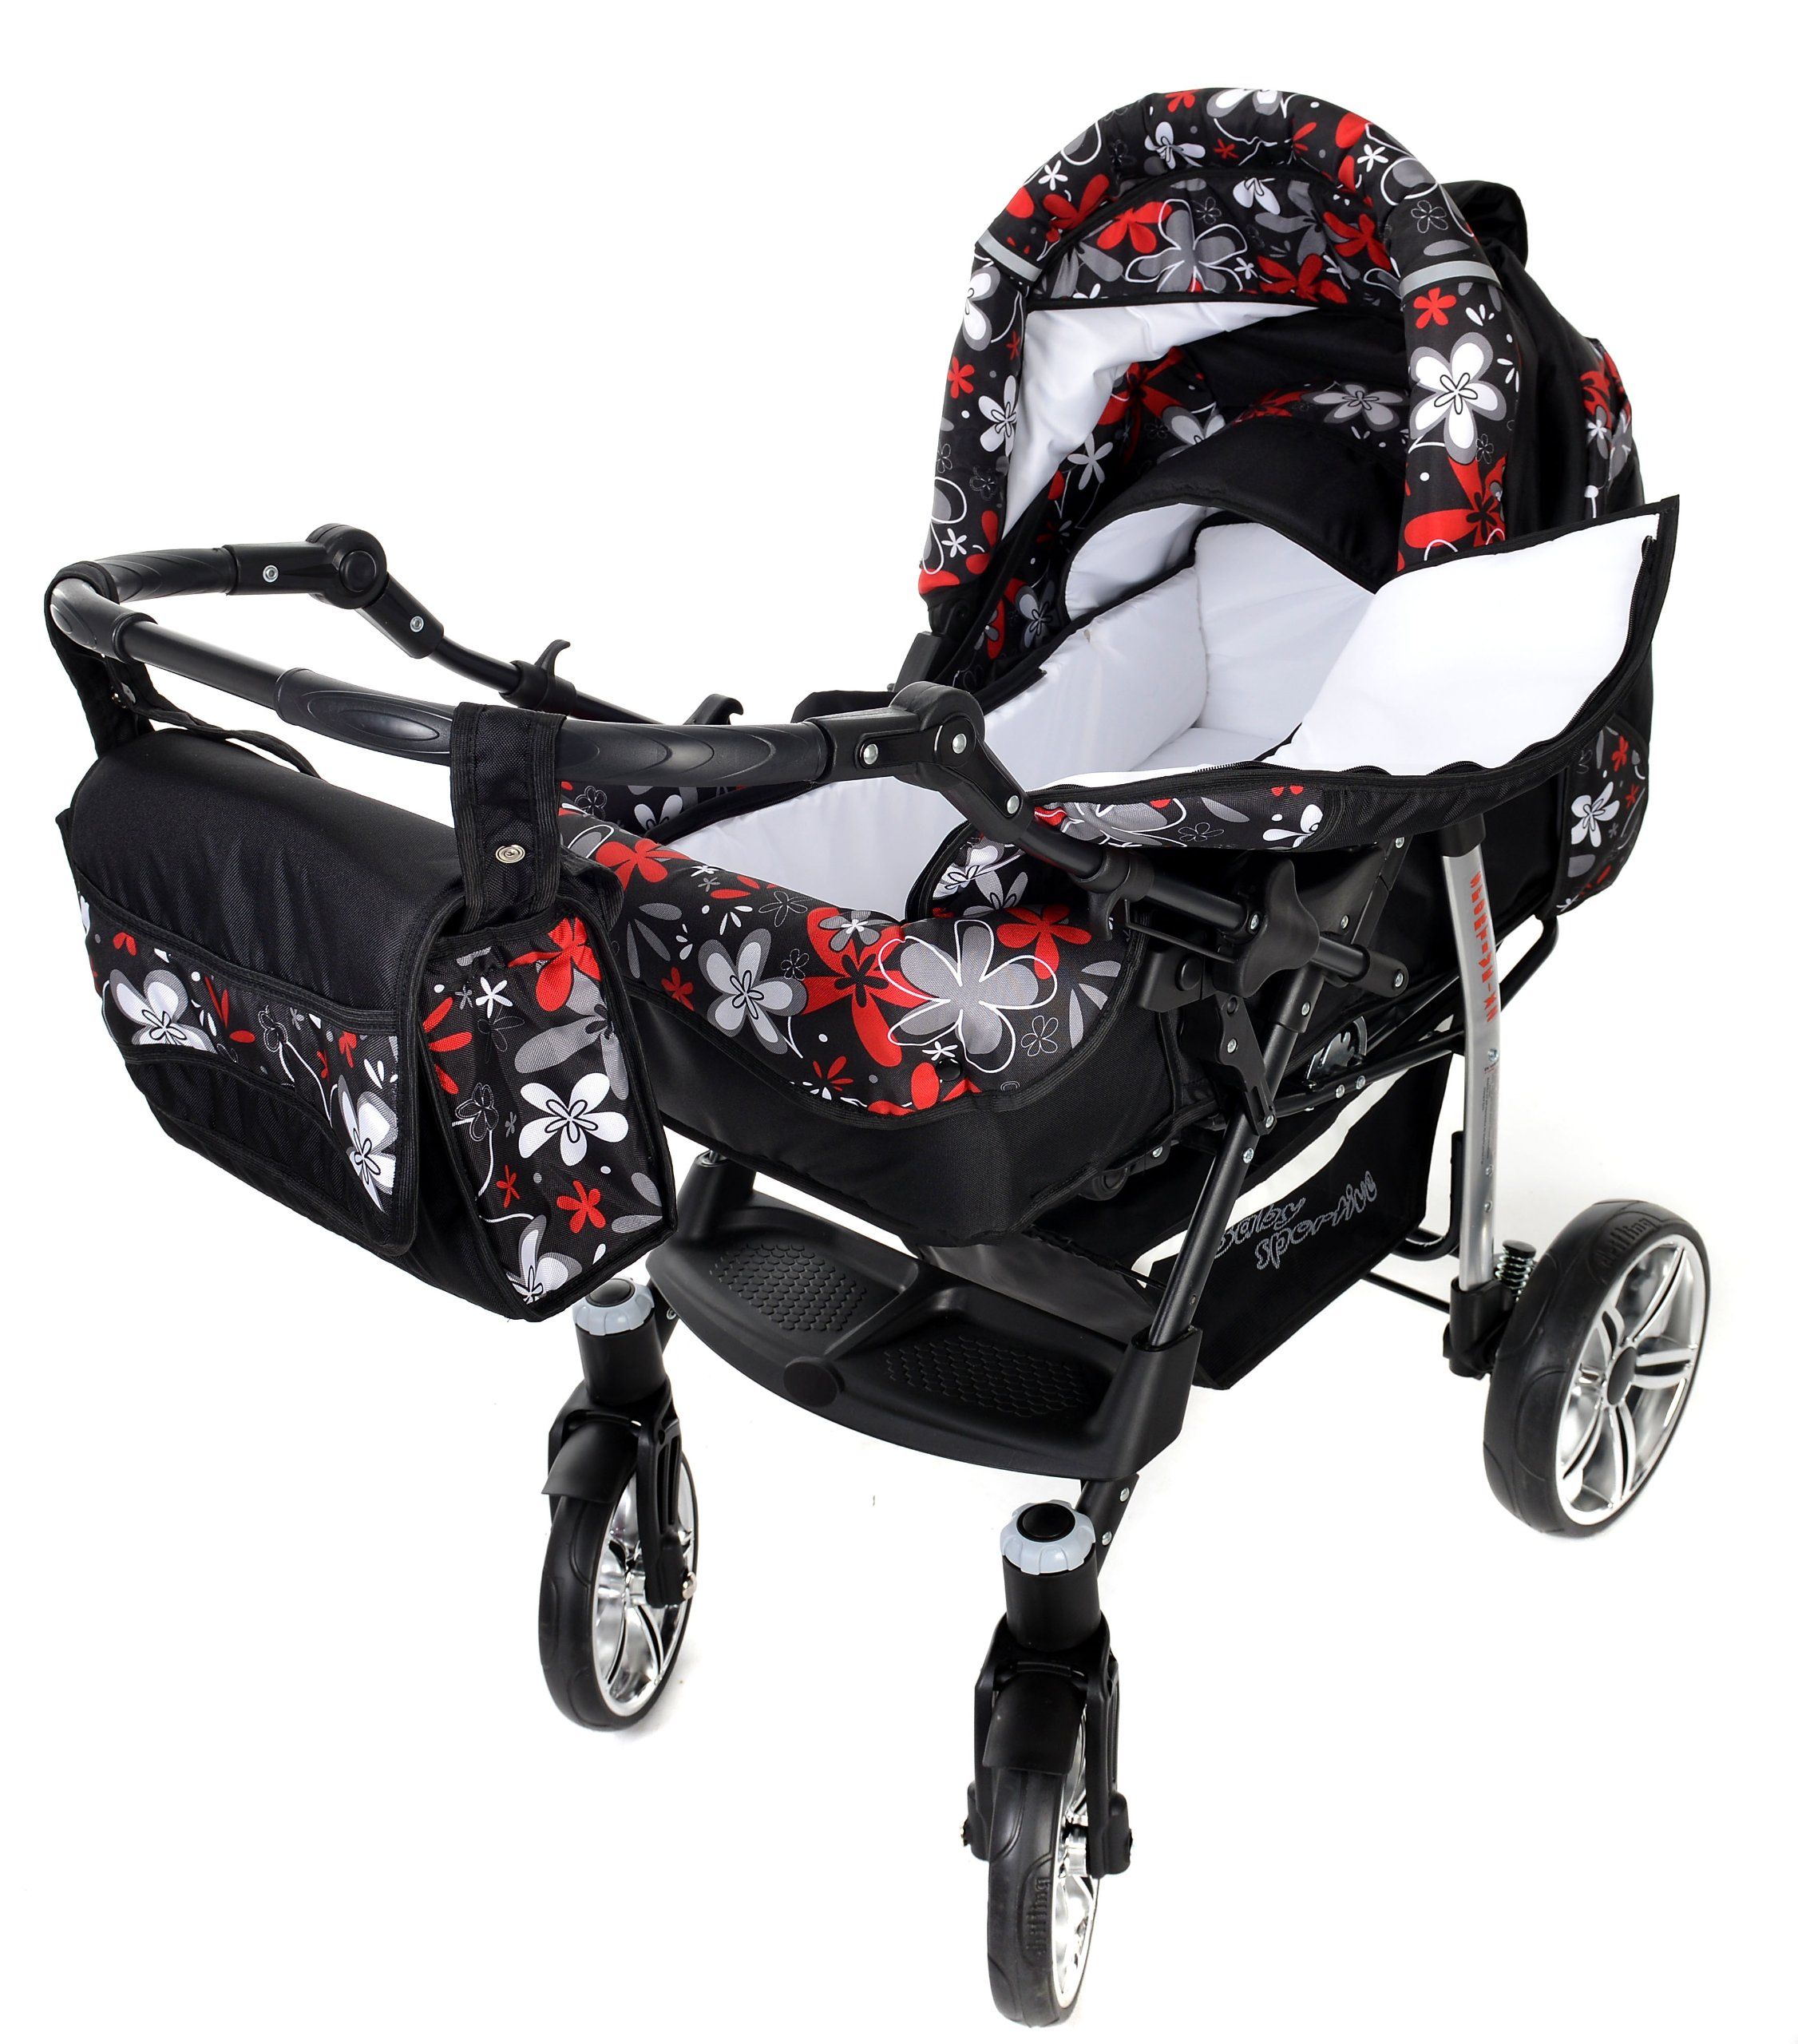 Sportive X2, 3-in-1 Travel System incl. Baby Pram with Swivel Wheels, Car Seat, Pushchair & Accessories (3-in-1 Travel System, Black & Small Flowers) Baby Sportive 3 in 1 Travel System All in One Set - Pram, Car Carrier Seat and Sport Buggy + Accessories: carrier bag, rain protection, mosquito net, changing mat, removable bottle holder and removable tray for your child's bits and pieces Suitable from birth, Easy Quick Folding System; Large storage basket; Turnable handle bar that allows to face or rear the drive direction; Quick release rear wheels for easy cleaning after muddy walks Front lockable 360o swivel wheels for manoeuvrability , Small sized when folded, fits into many small car trunks, Carry-cot with a removable hood, Reflective elements for better visibility 8